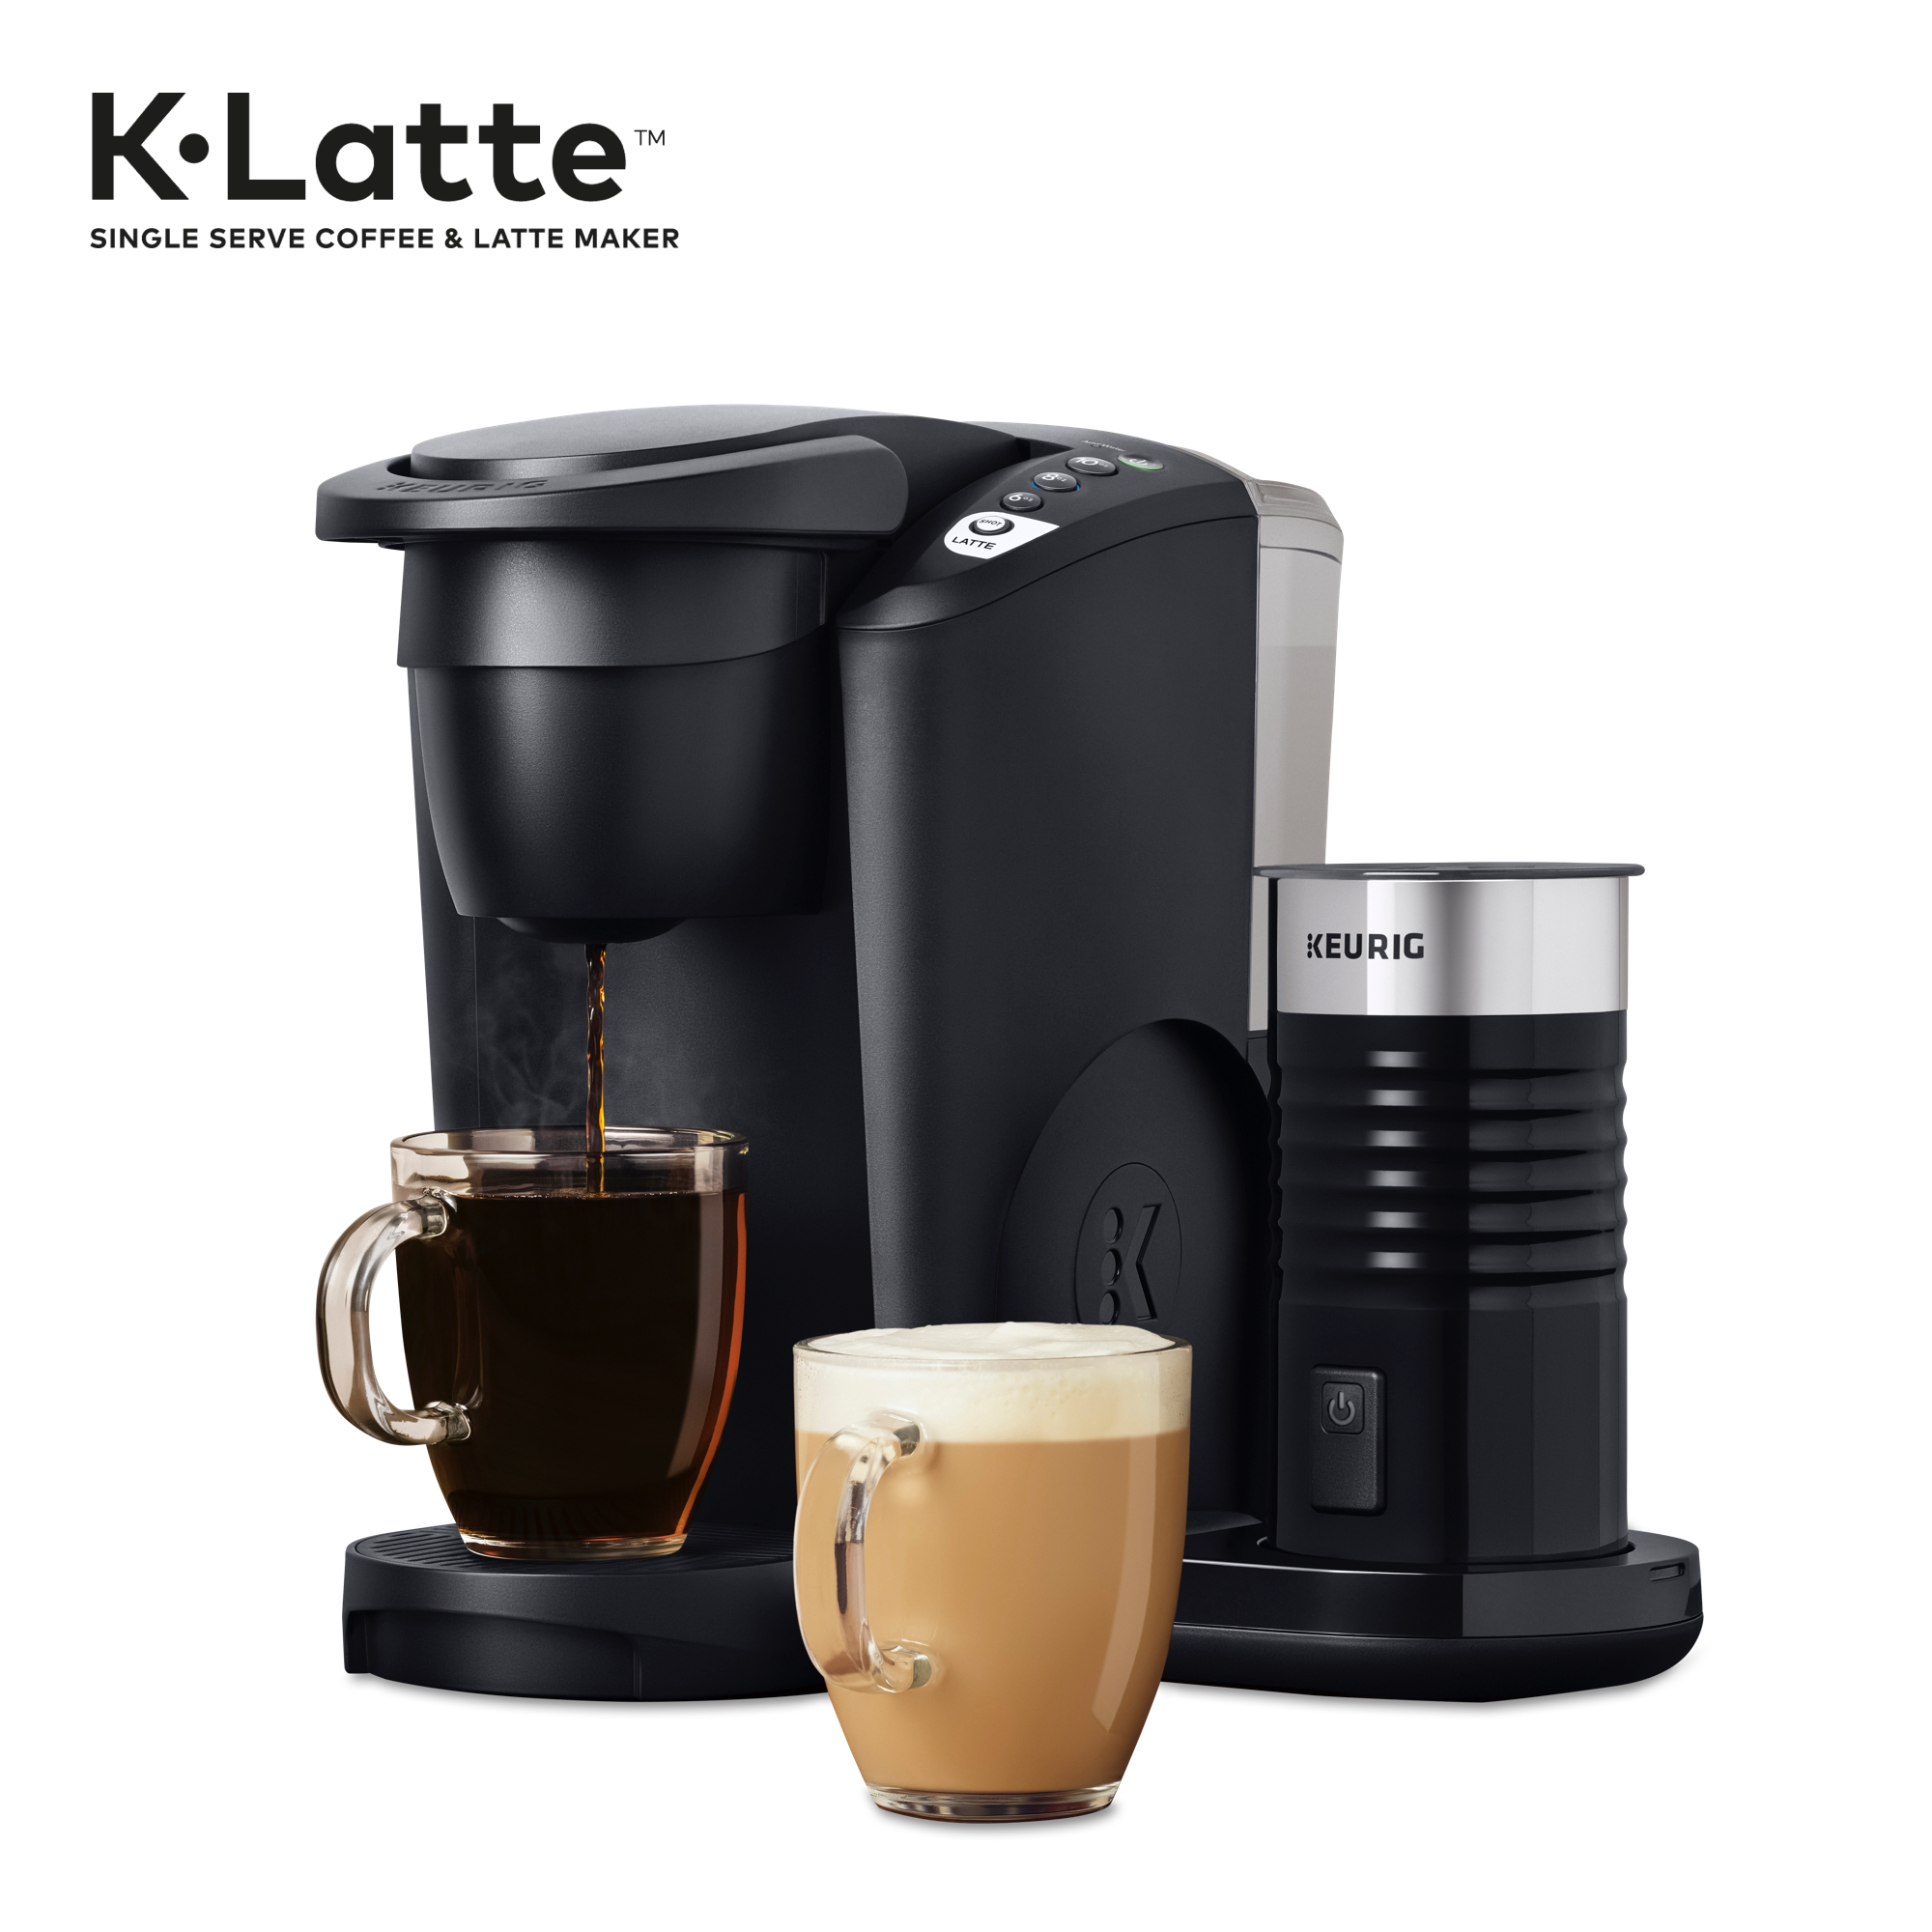 Keurig K Latte Coffee Maker With Milk Frother Compatible With All